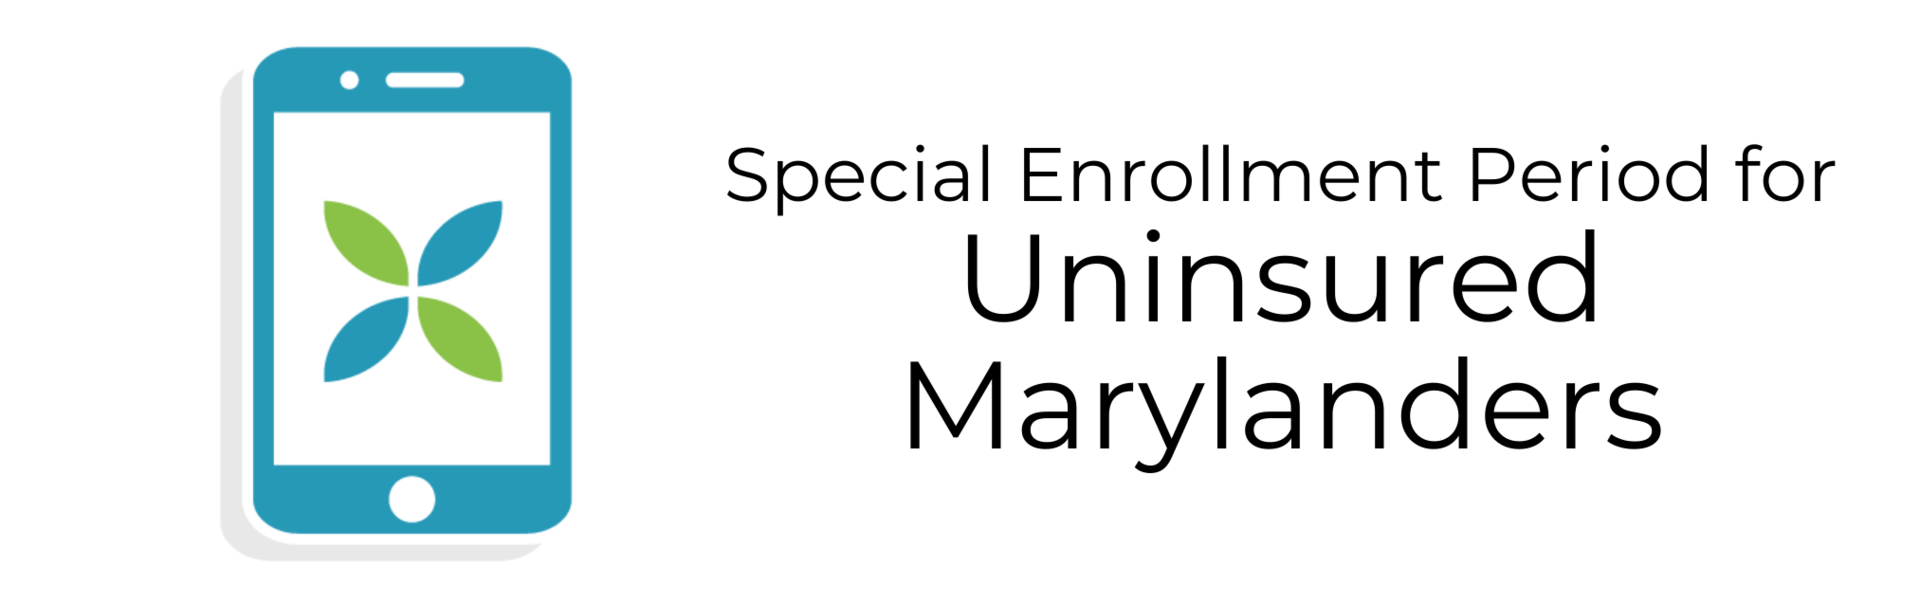 Maryland Health Connections